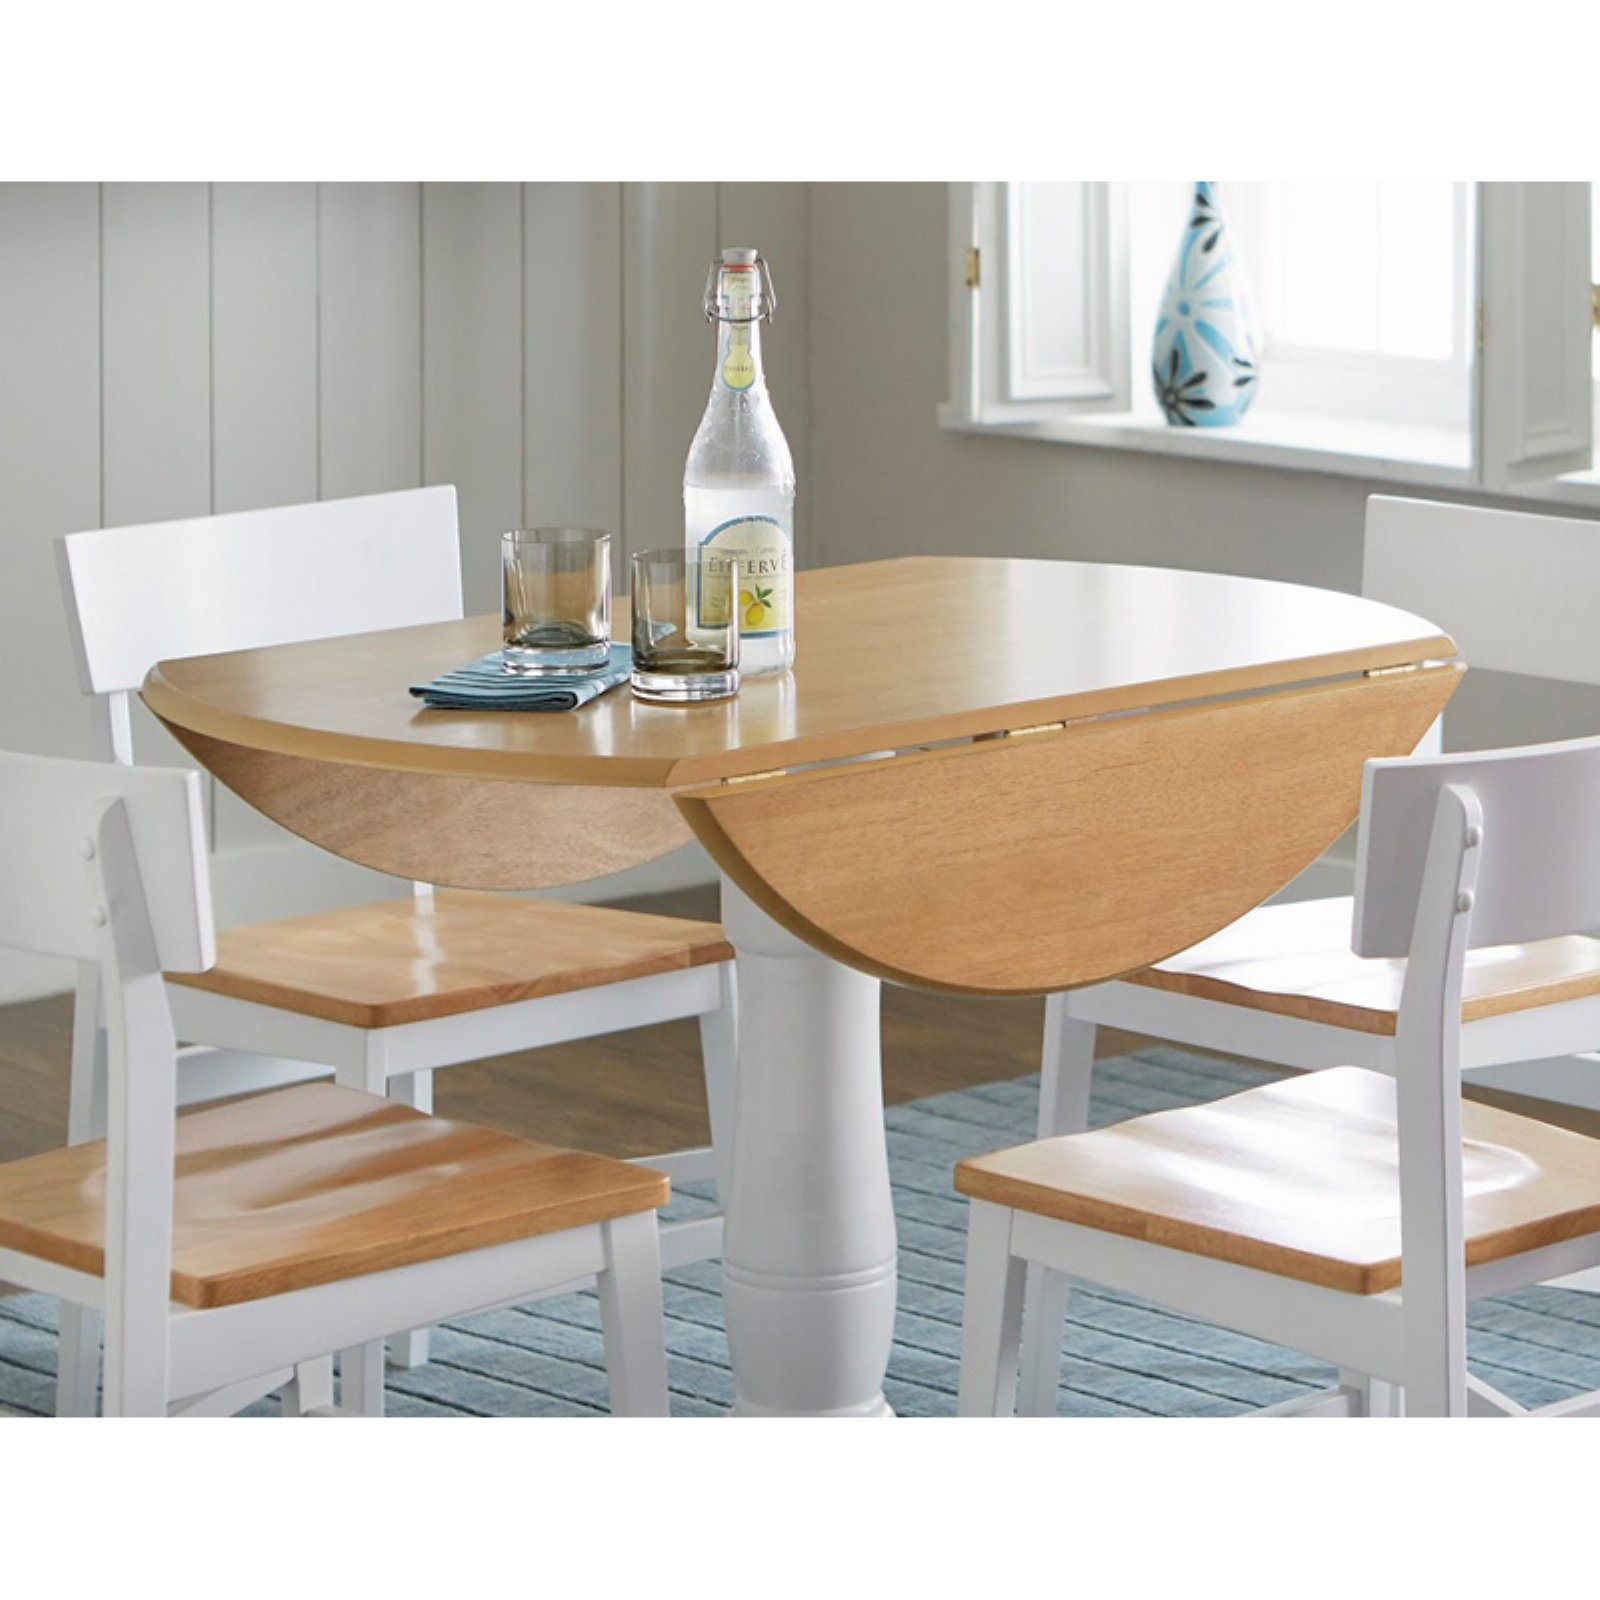 40 round dining table pedestal progressive furniture christy complete 40 in round dining table